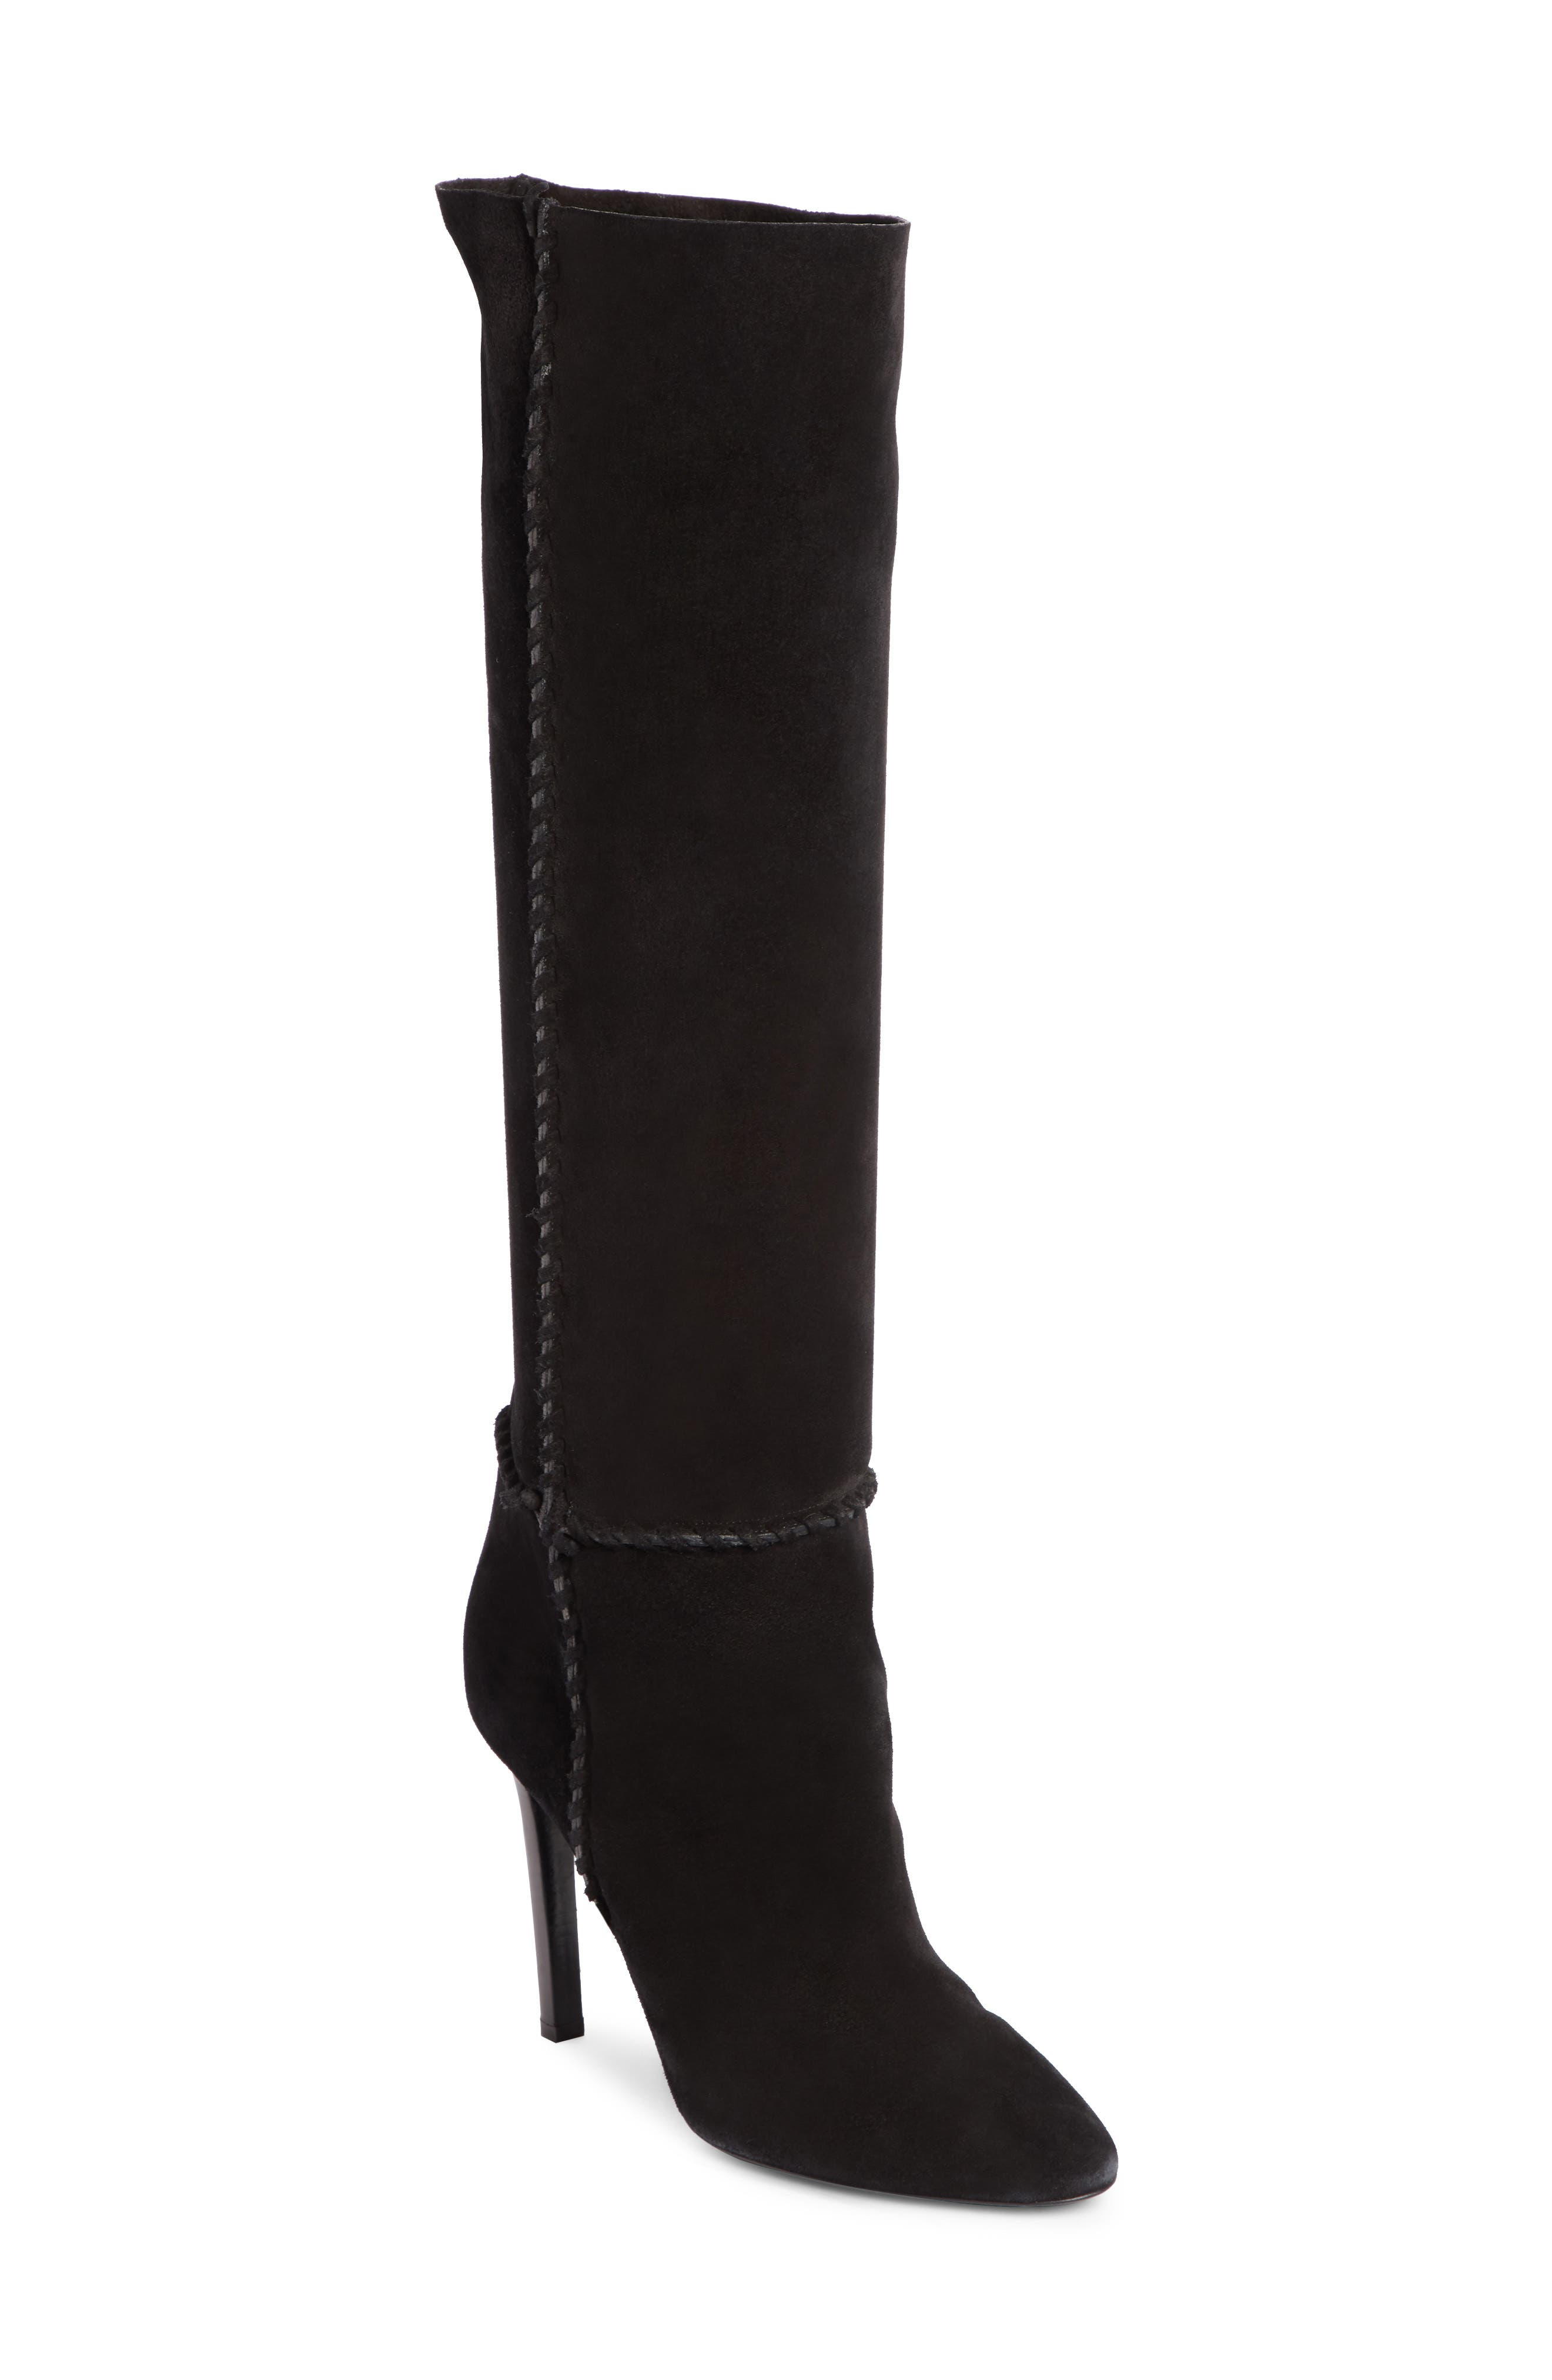 Mica Suede Knee Boots in Black Suede